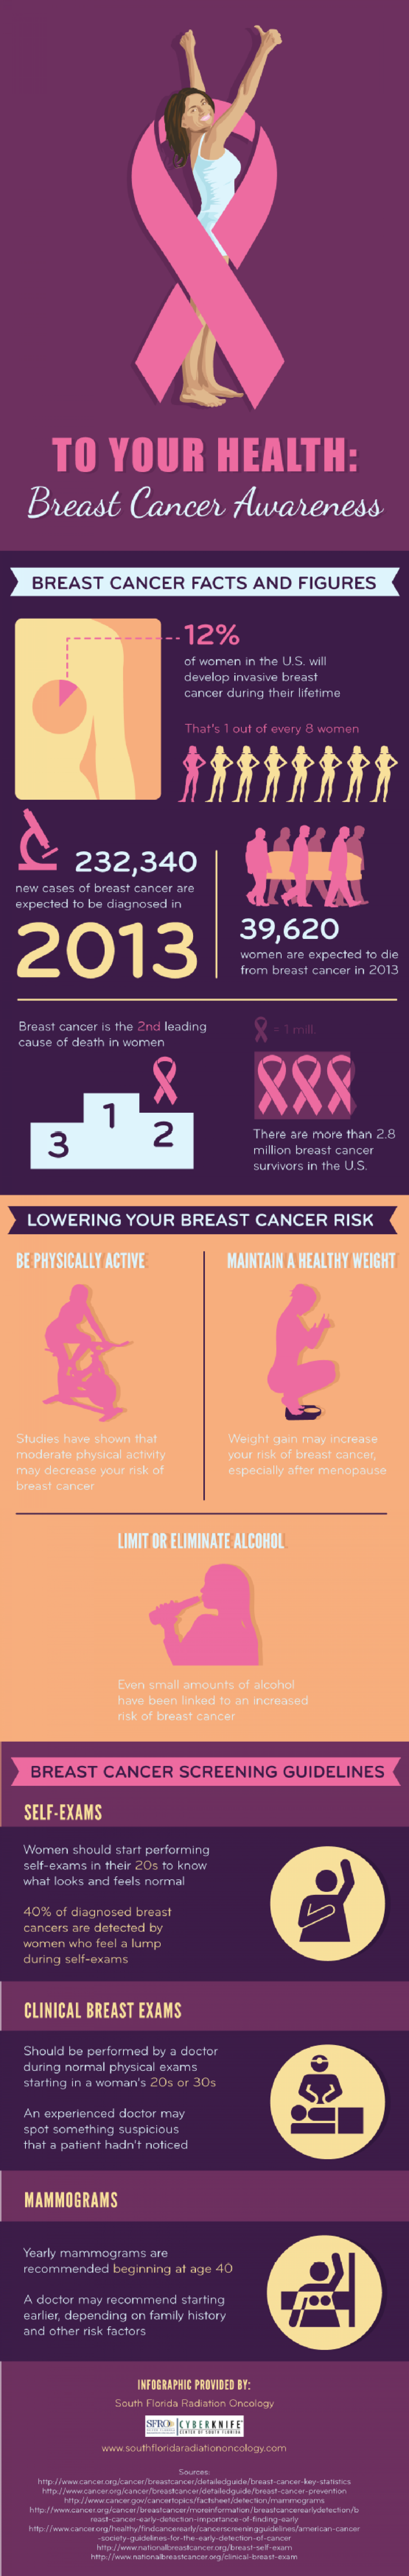 To Your Health: Breast Cancer Awareness Infographic